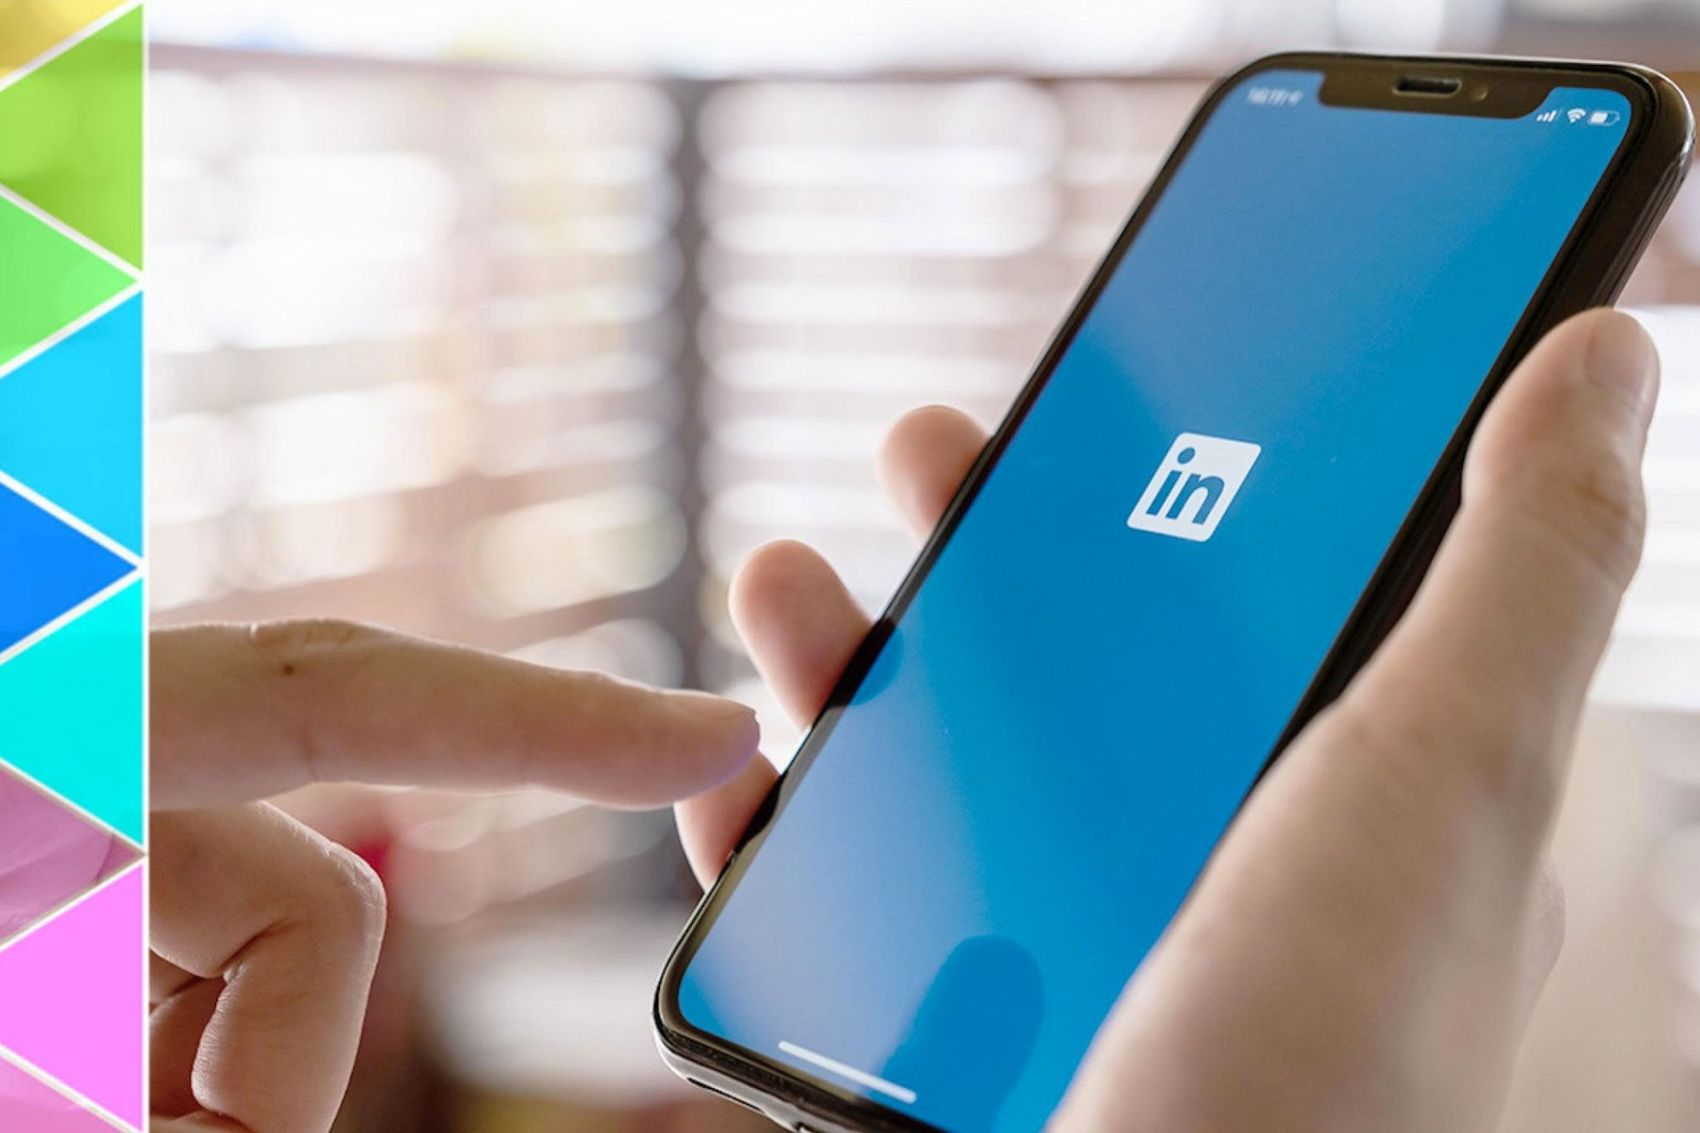 How to Quickly Update Your LinkedIn Profile